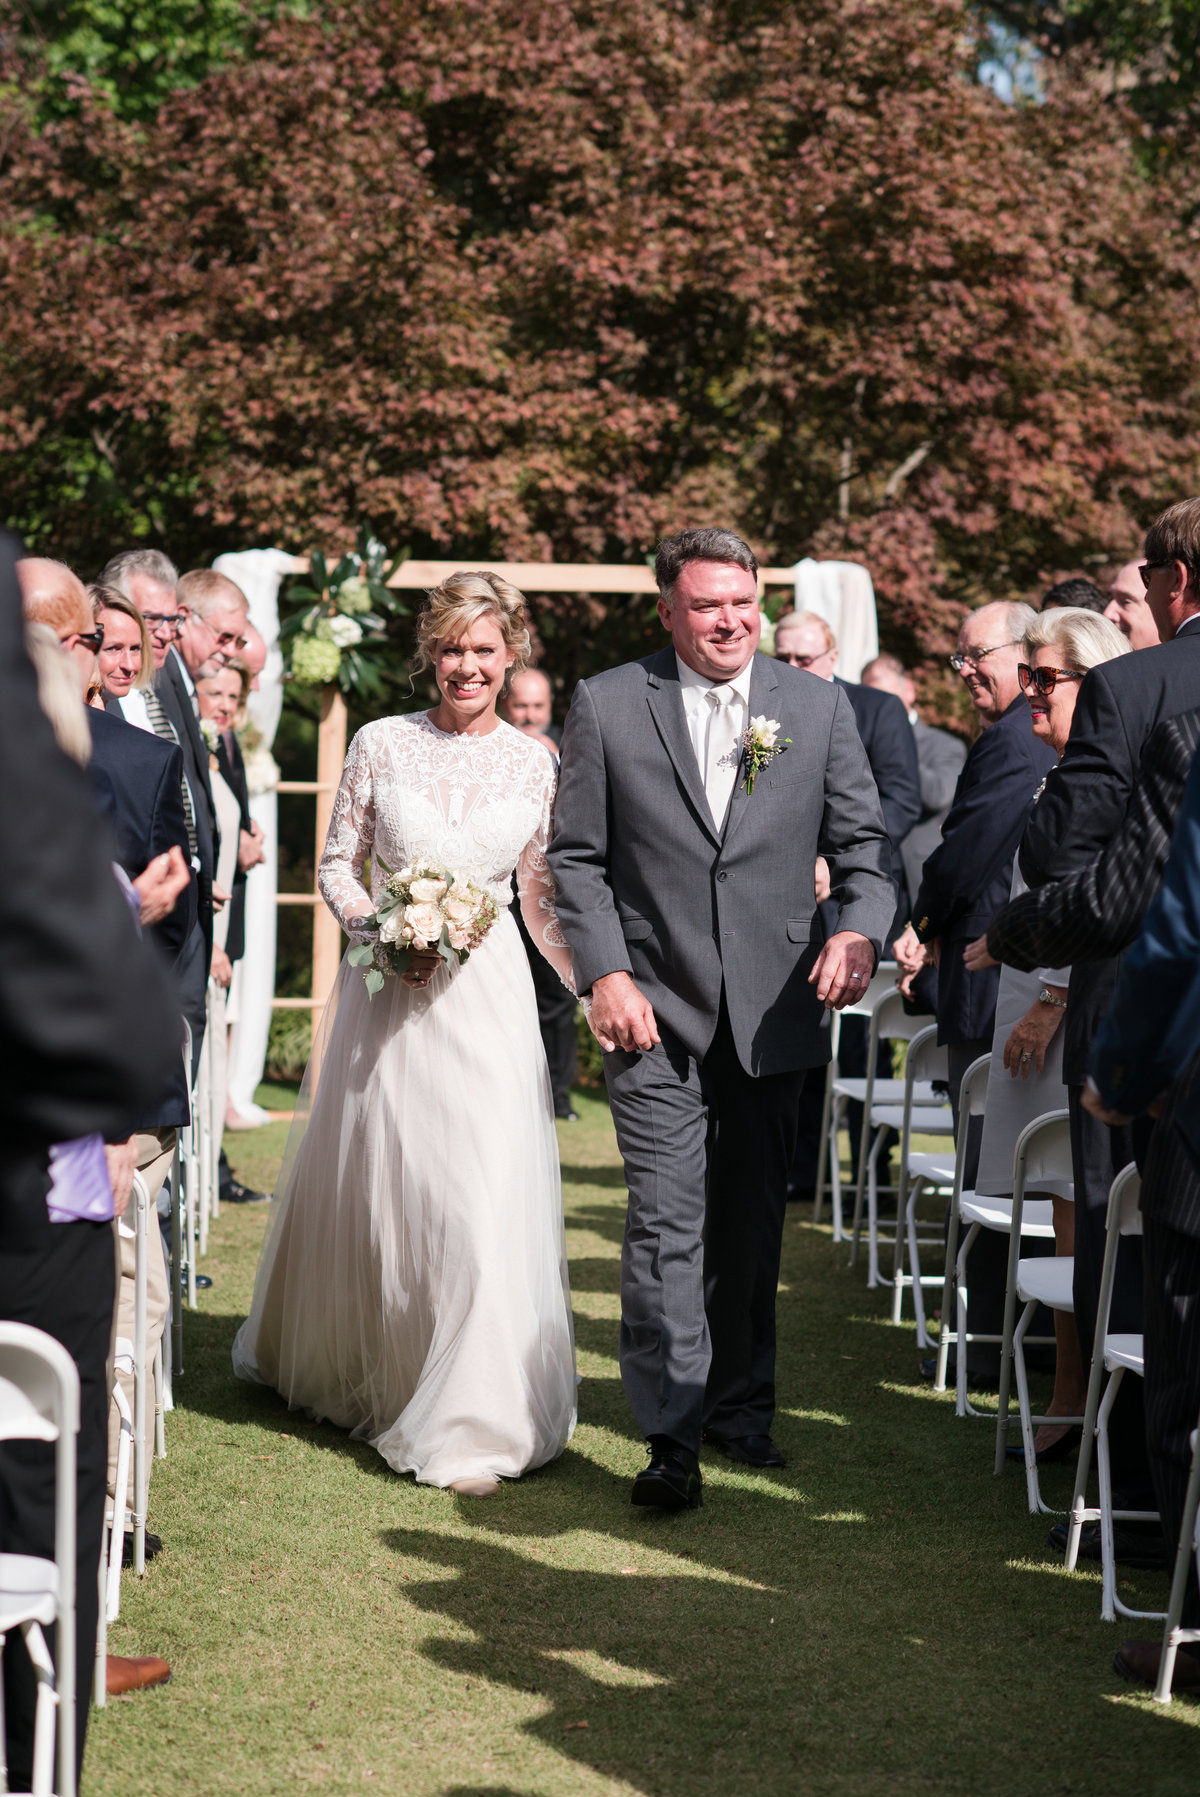 Fletcher_Park_Raleigh_NC_Wedding0032